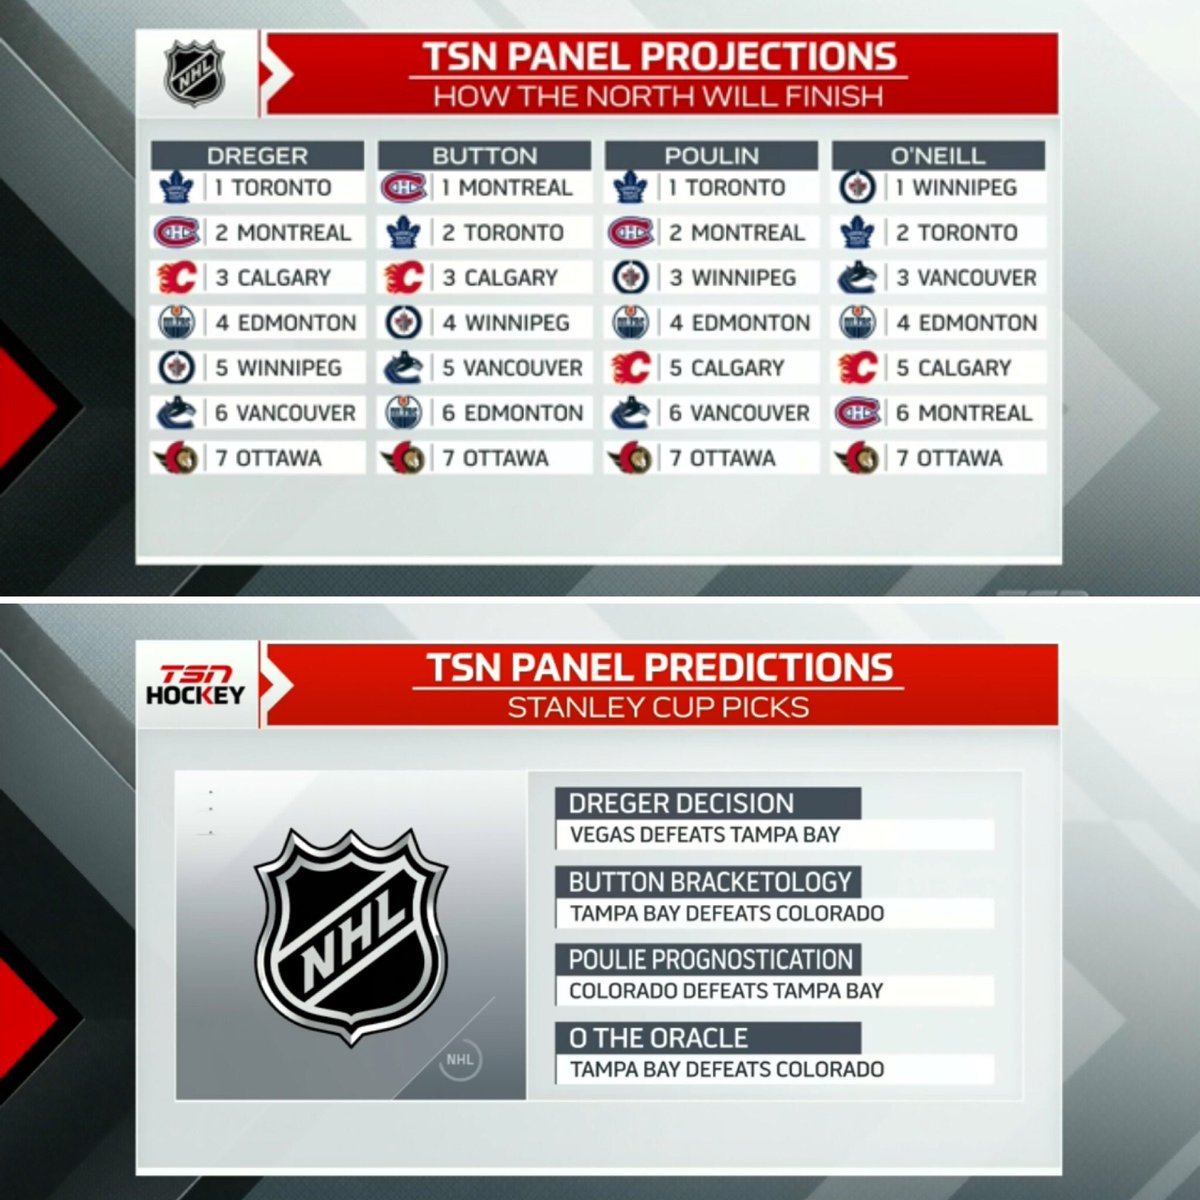 #TSNHockey #NHL Season Preview: The panel predicts which 🇨🇦 team they think will come out on top in the North Division, which two teams they think will play in the #StanleyCup Final and who will hoist the Cup at the end of the 2020-2021 season -